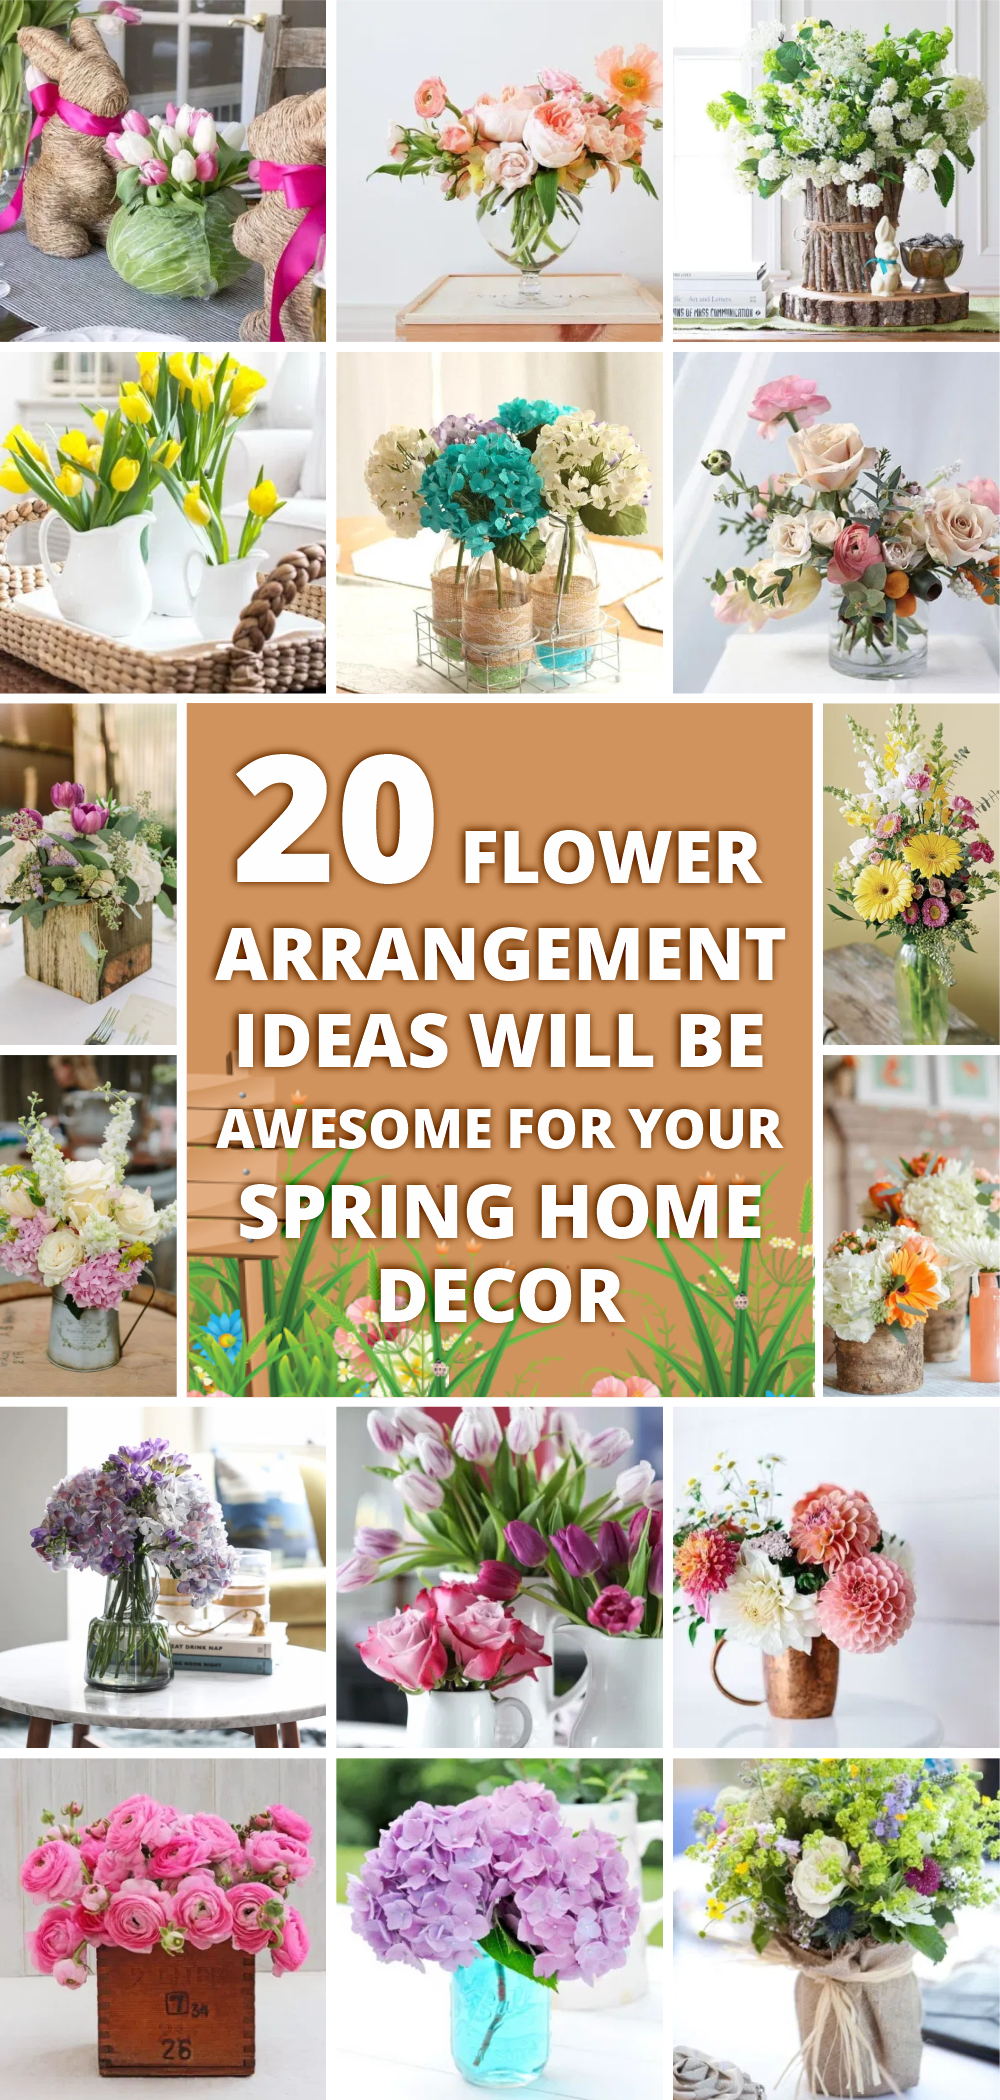 These 20 flower arrangement ideas will be awesome for your spring home decor 1